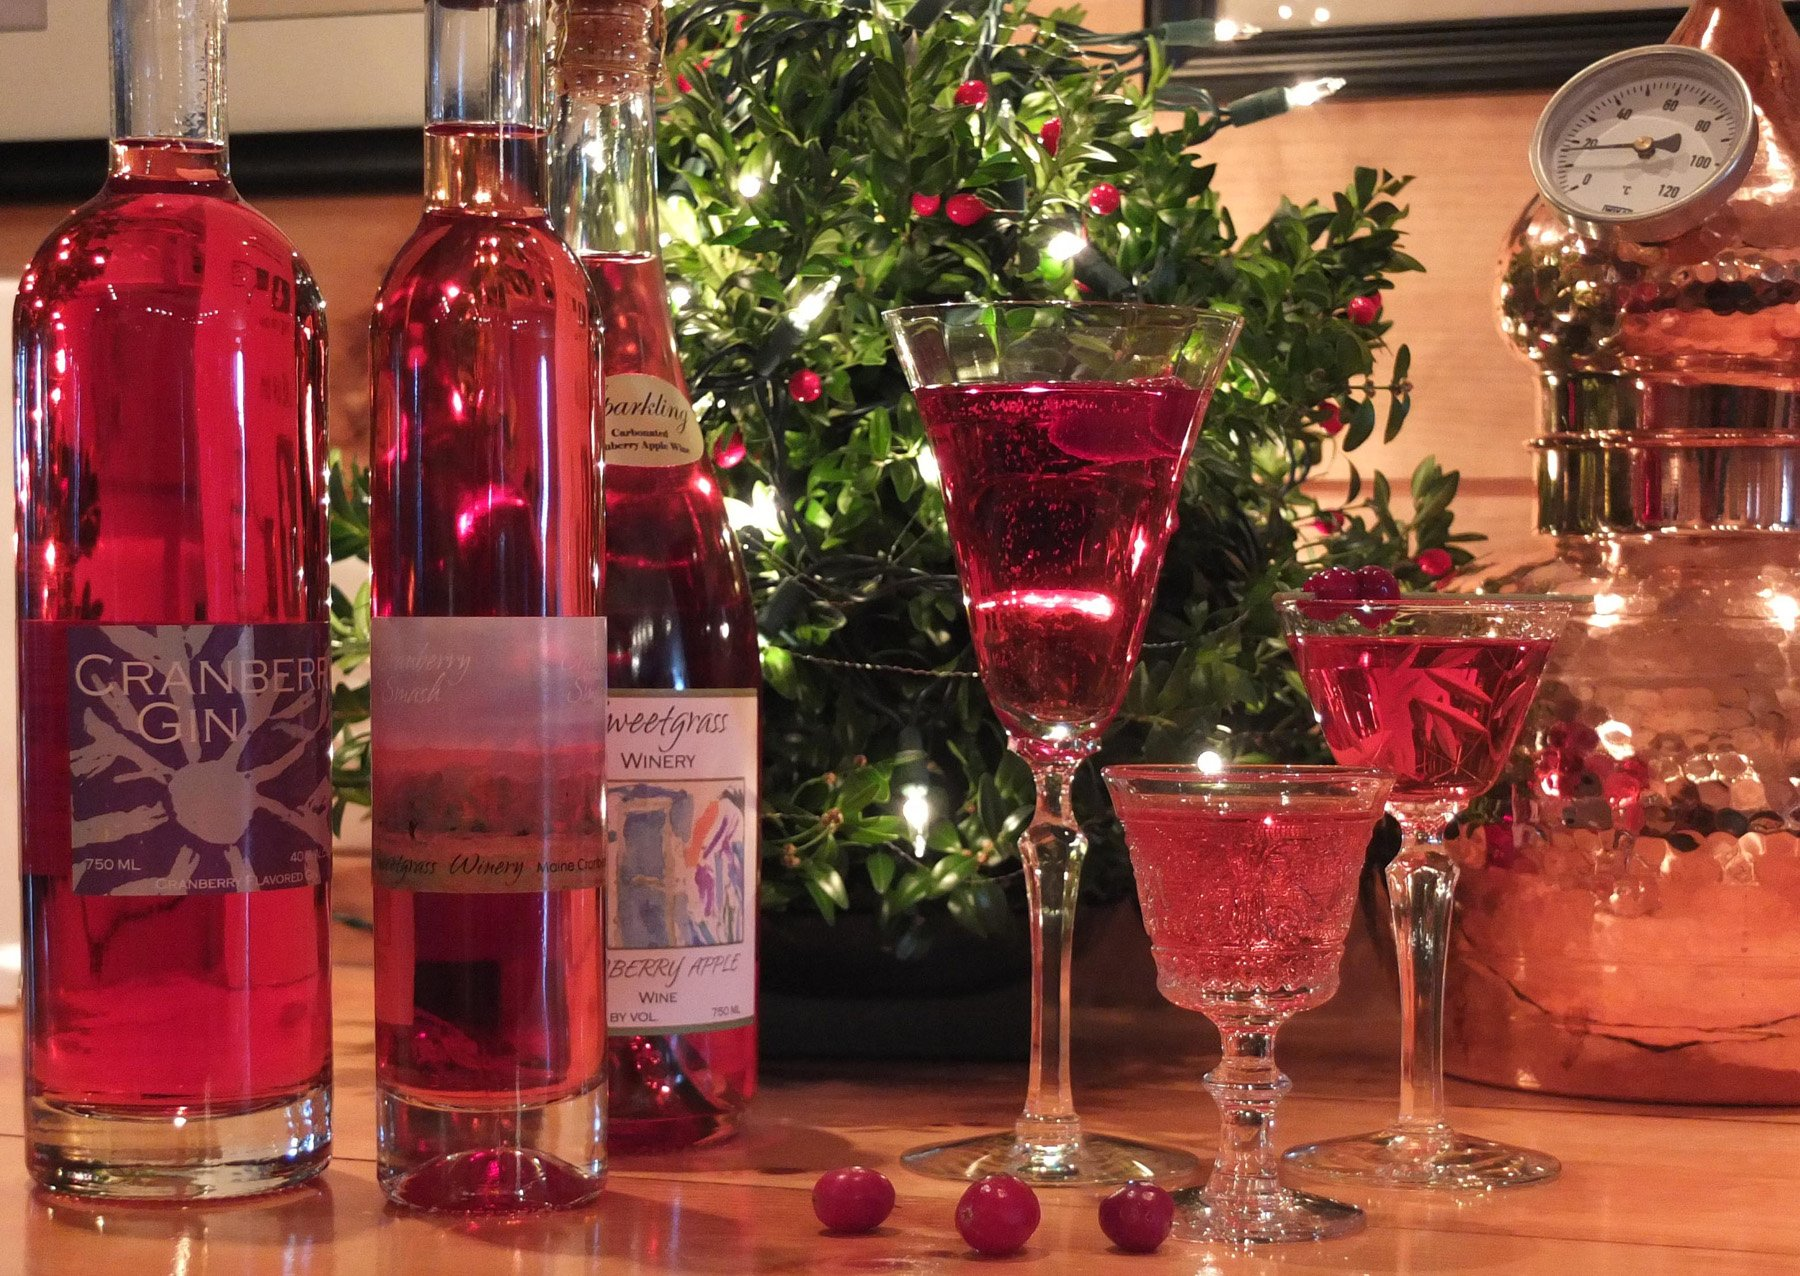 Maine wines and spirits make wonderful gifts, no wrapping and easy to share.